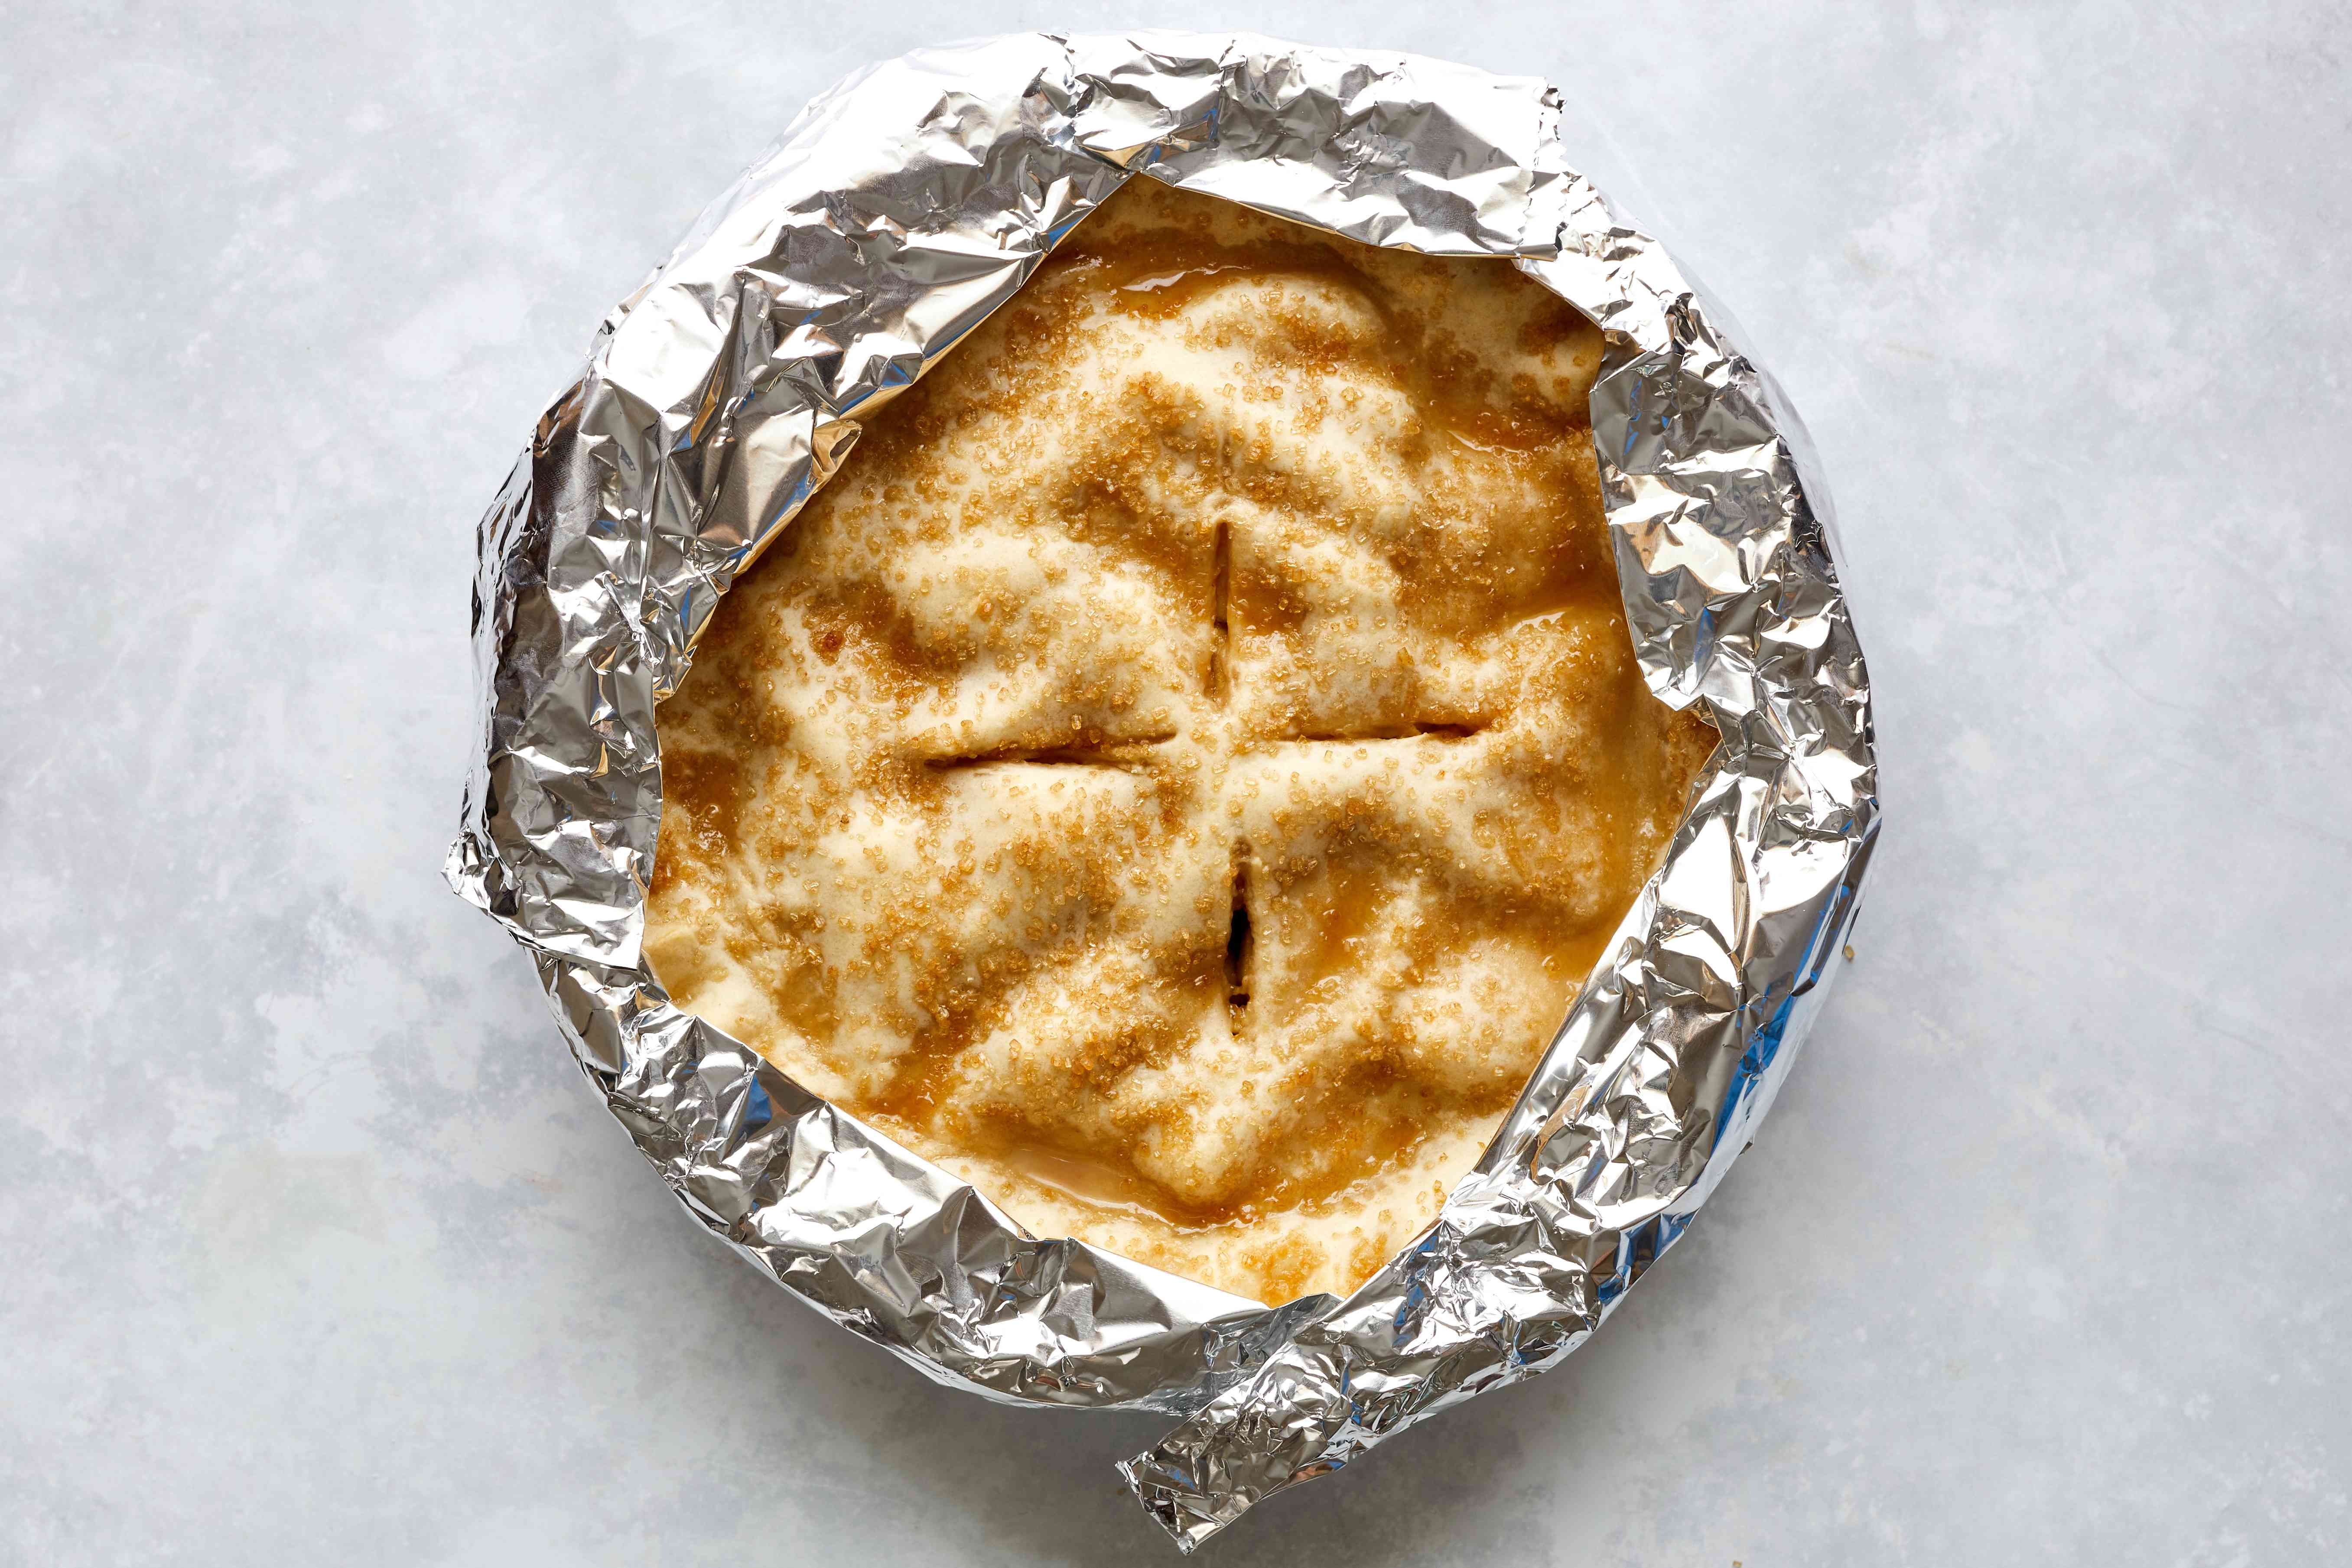 Apple pie wrapped with aluminum foil on the sides